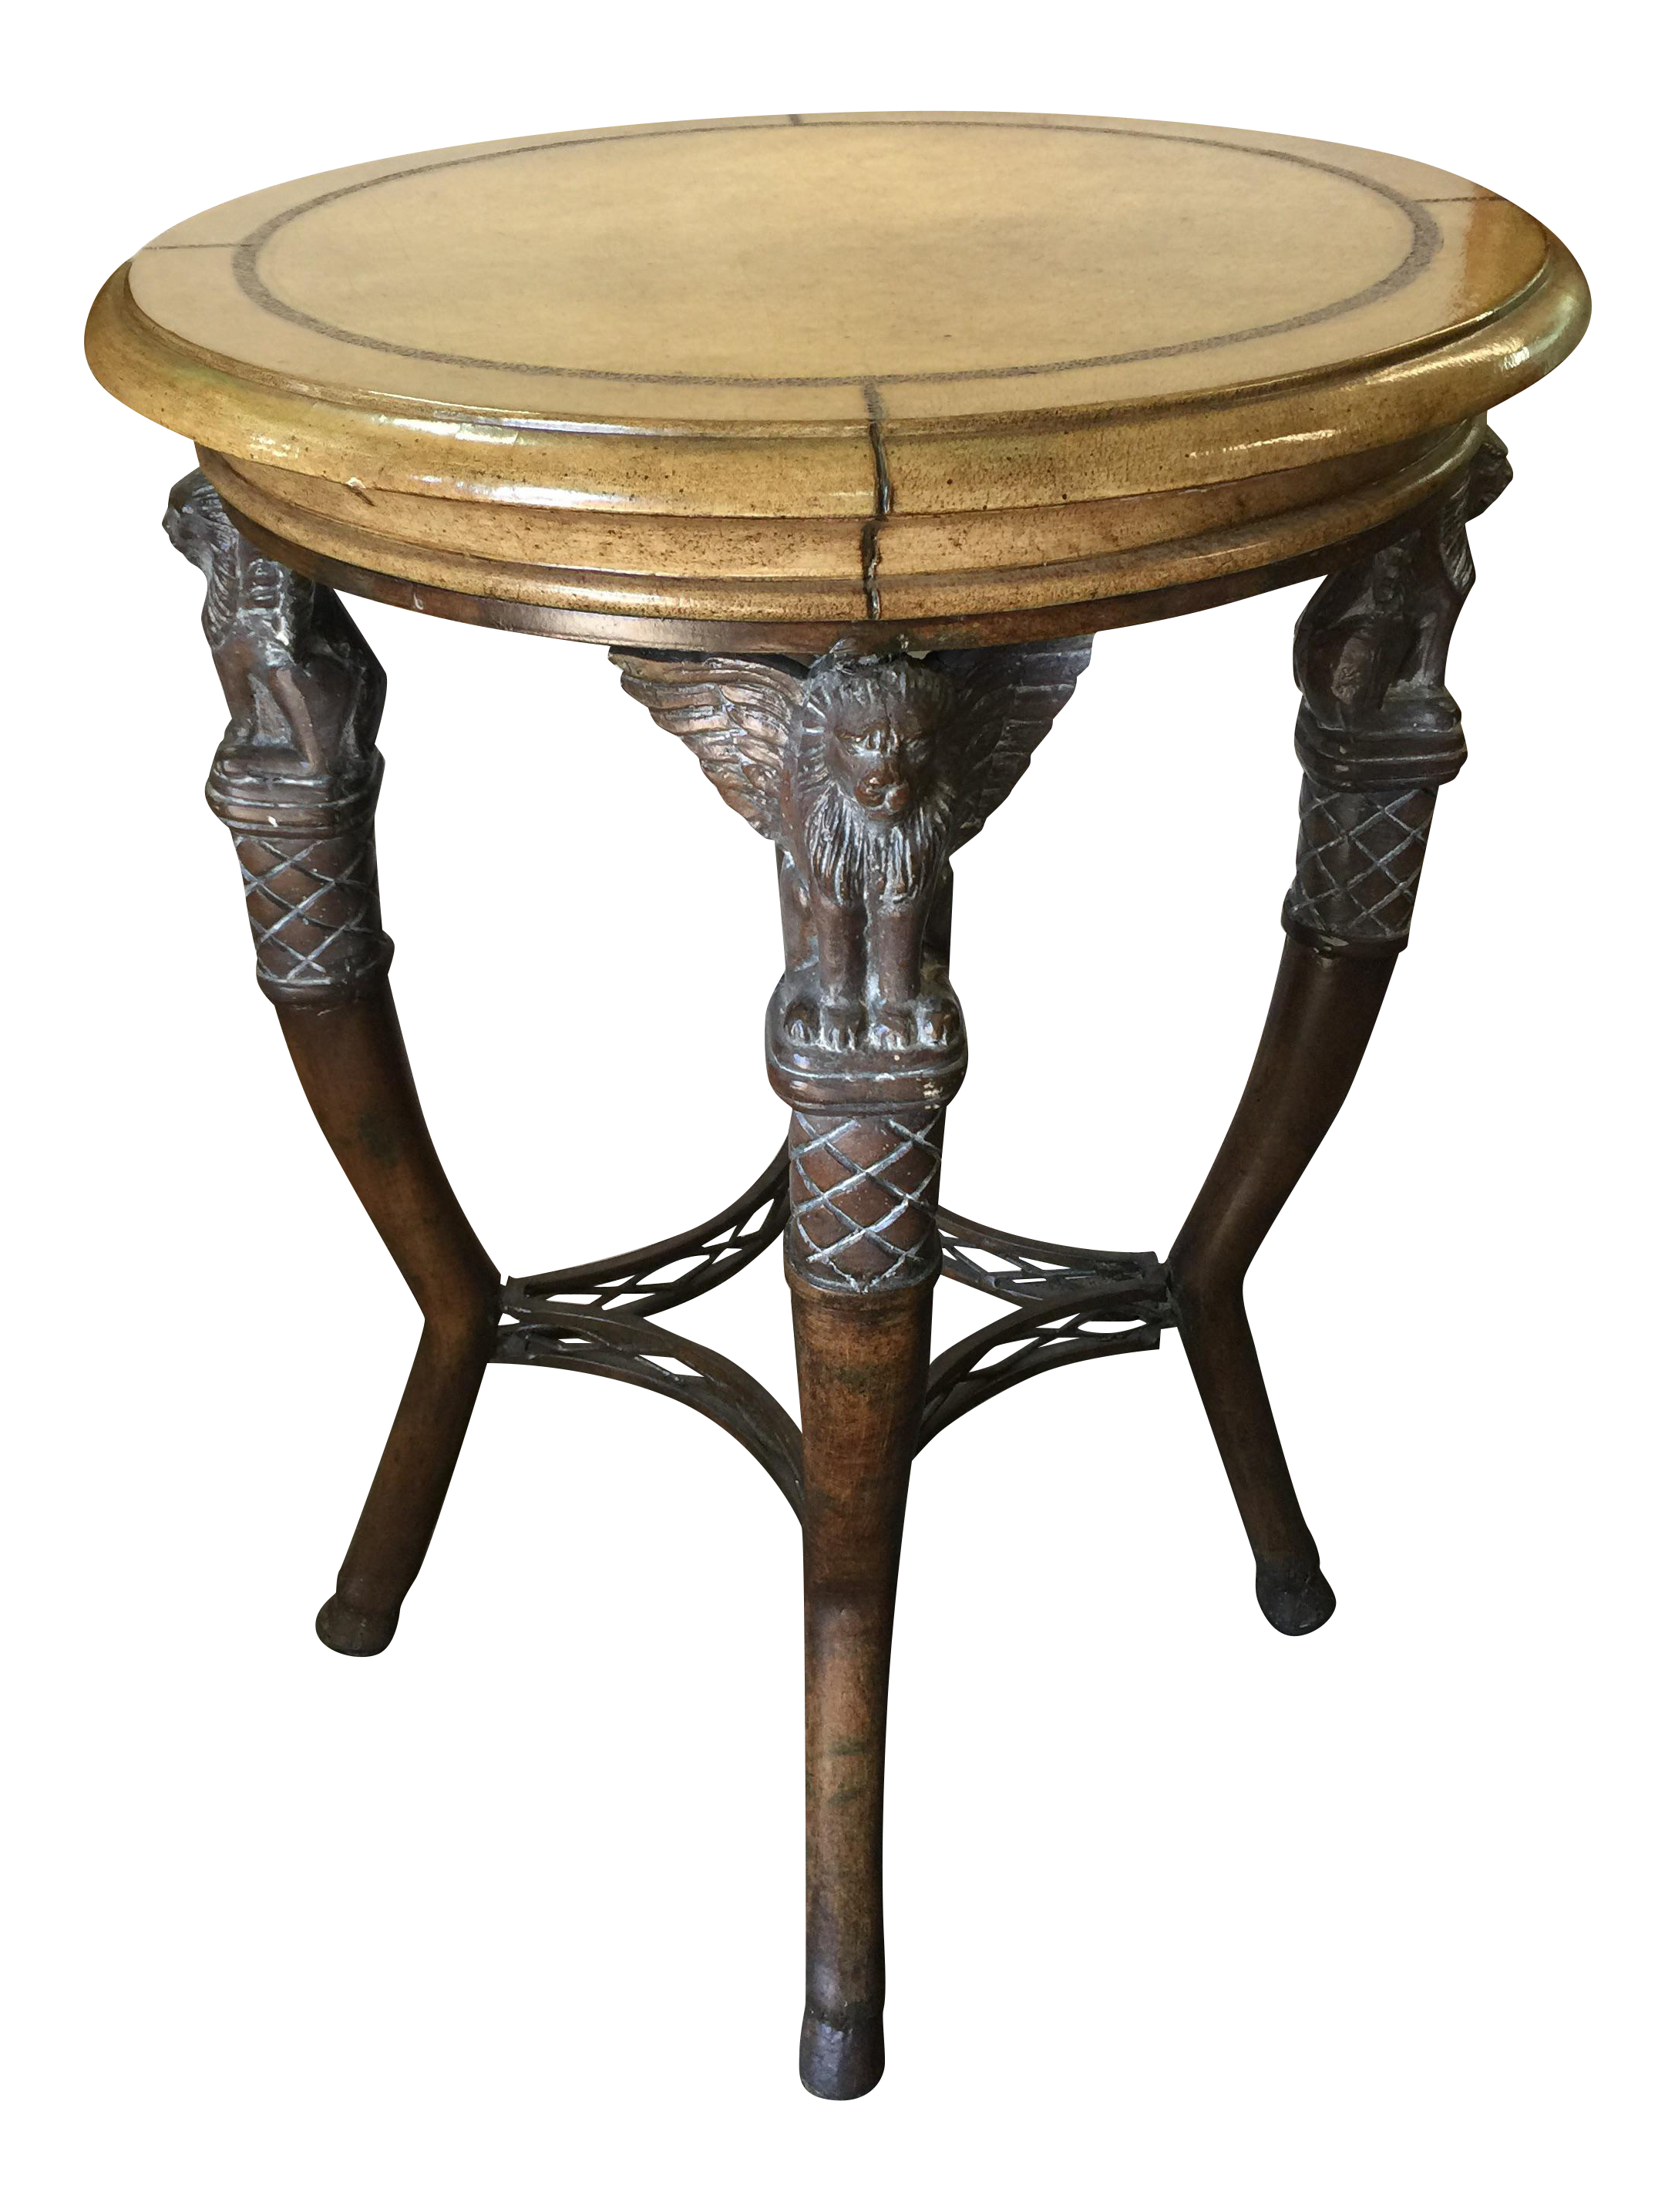 Egyptian Revival Round Table With Leather Top